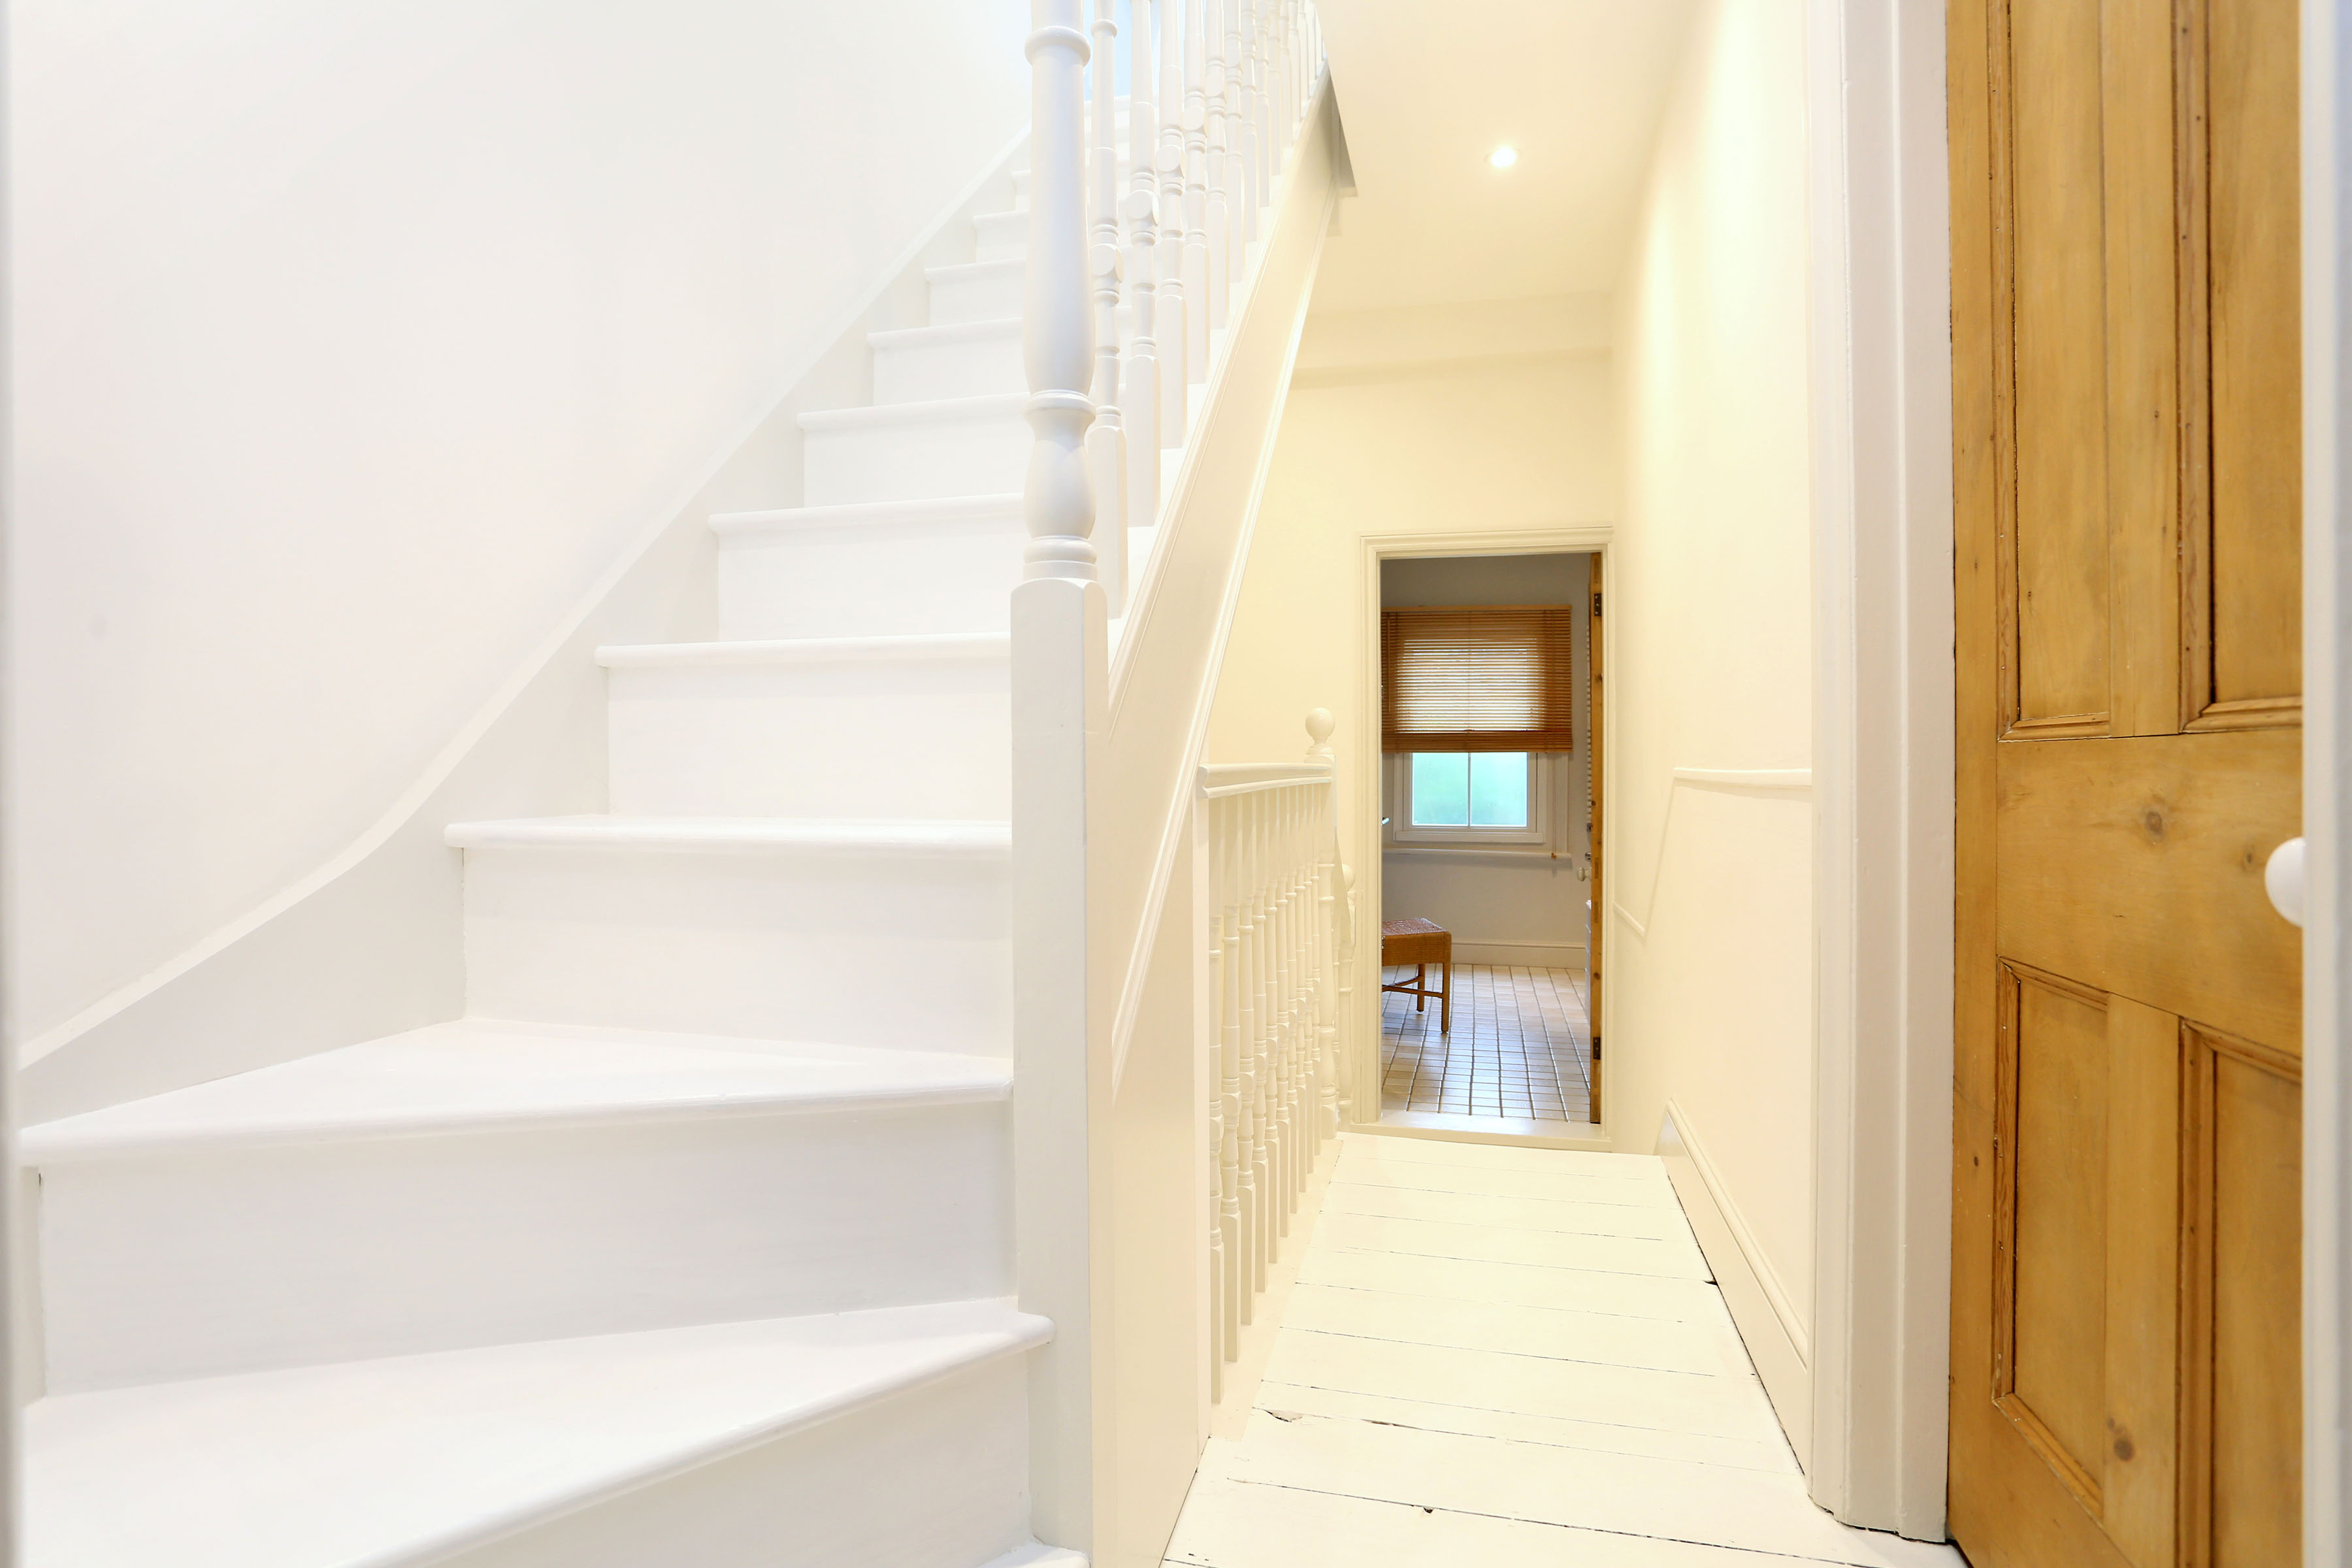 Painting & decorating of loft conversion in Windsor. - Temple Road